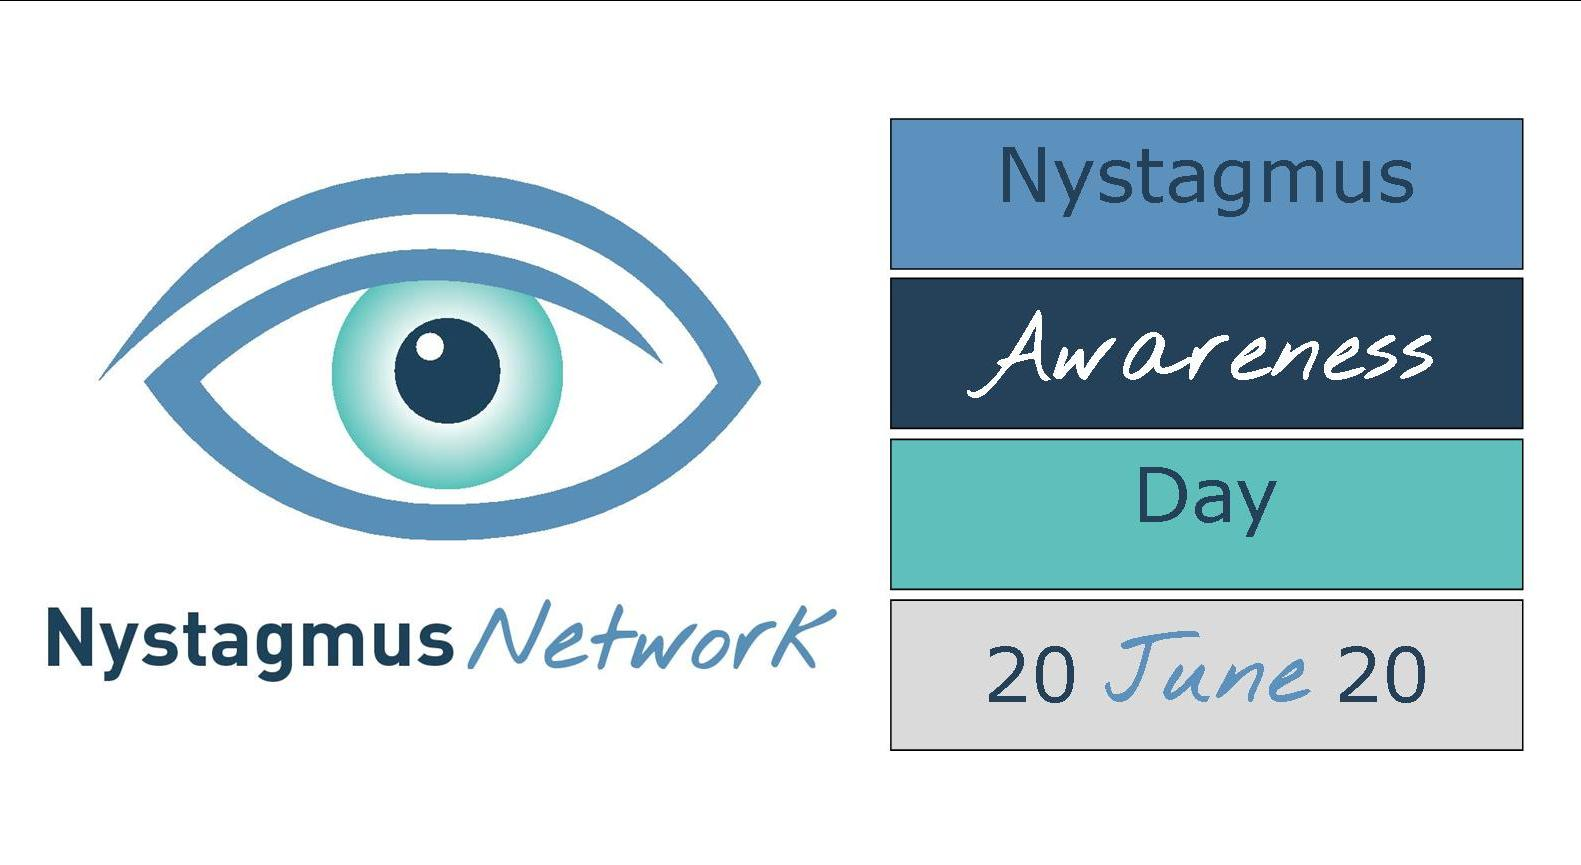 Nystagmus Awareness Day 20 June 20